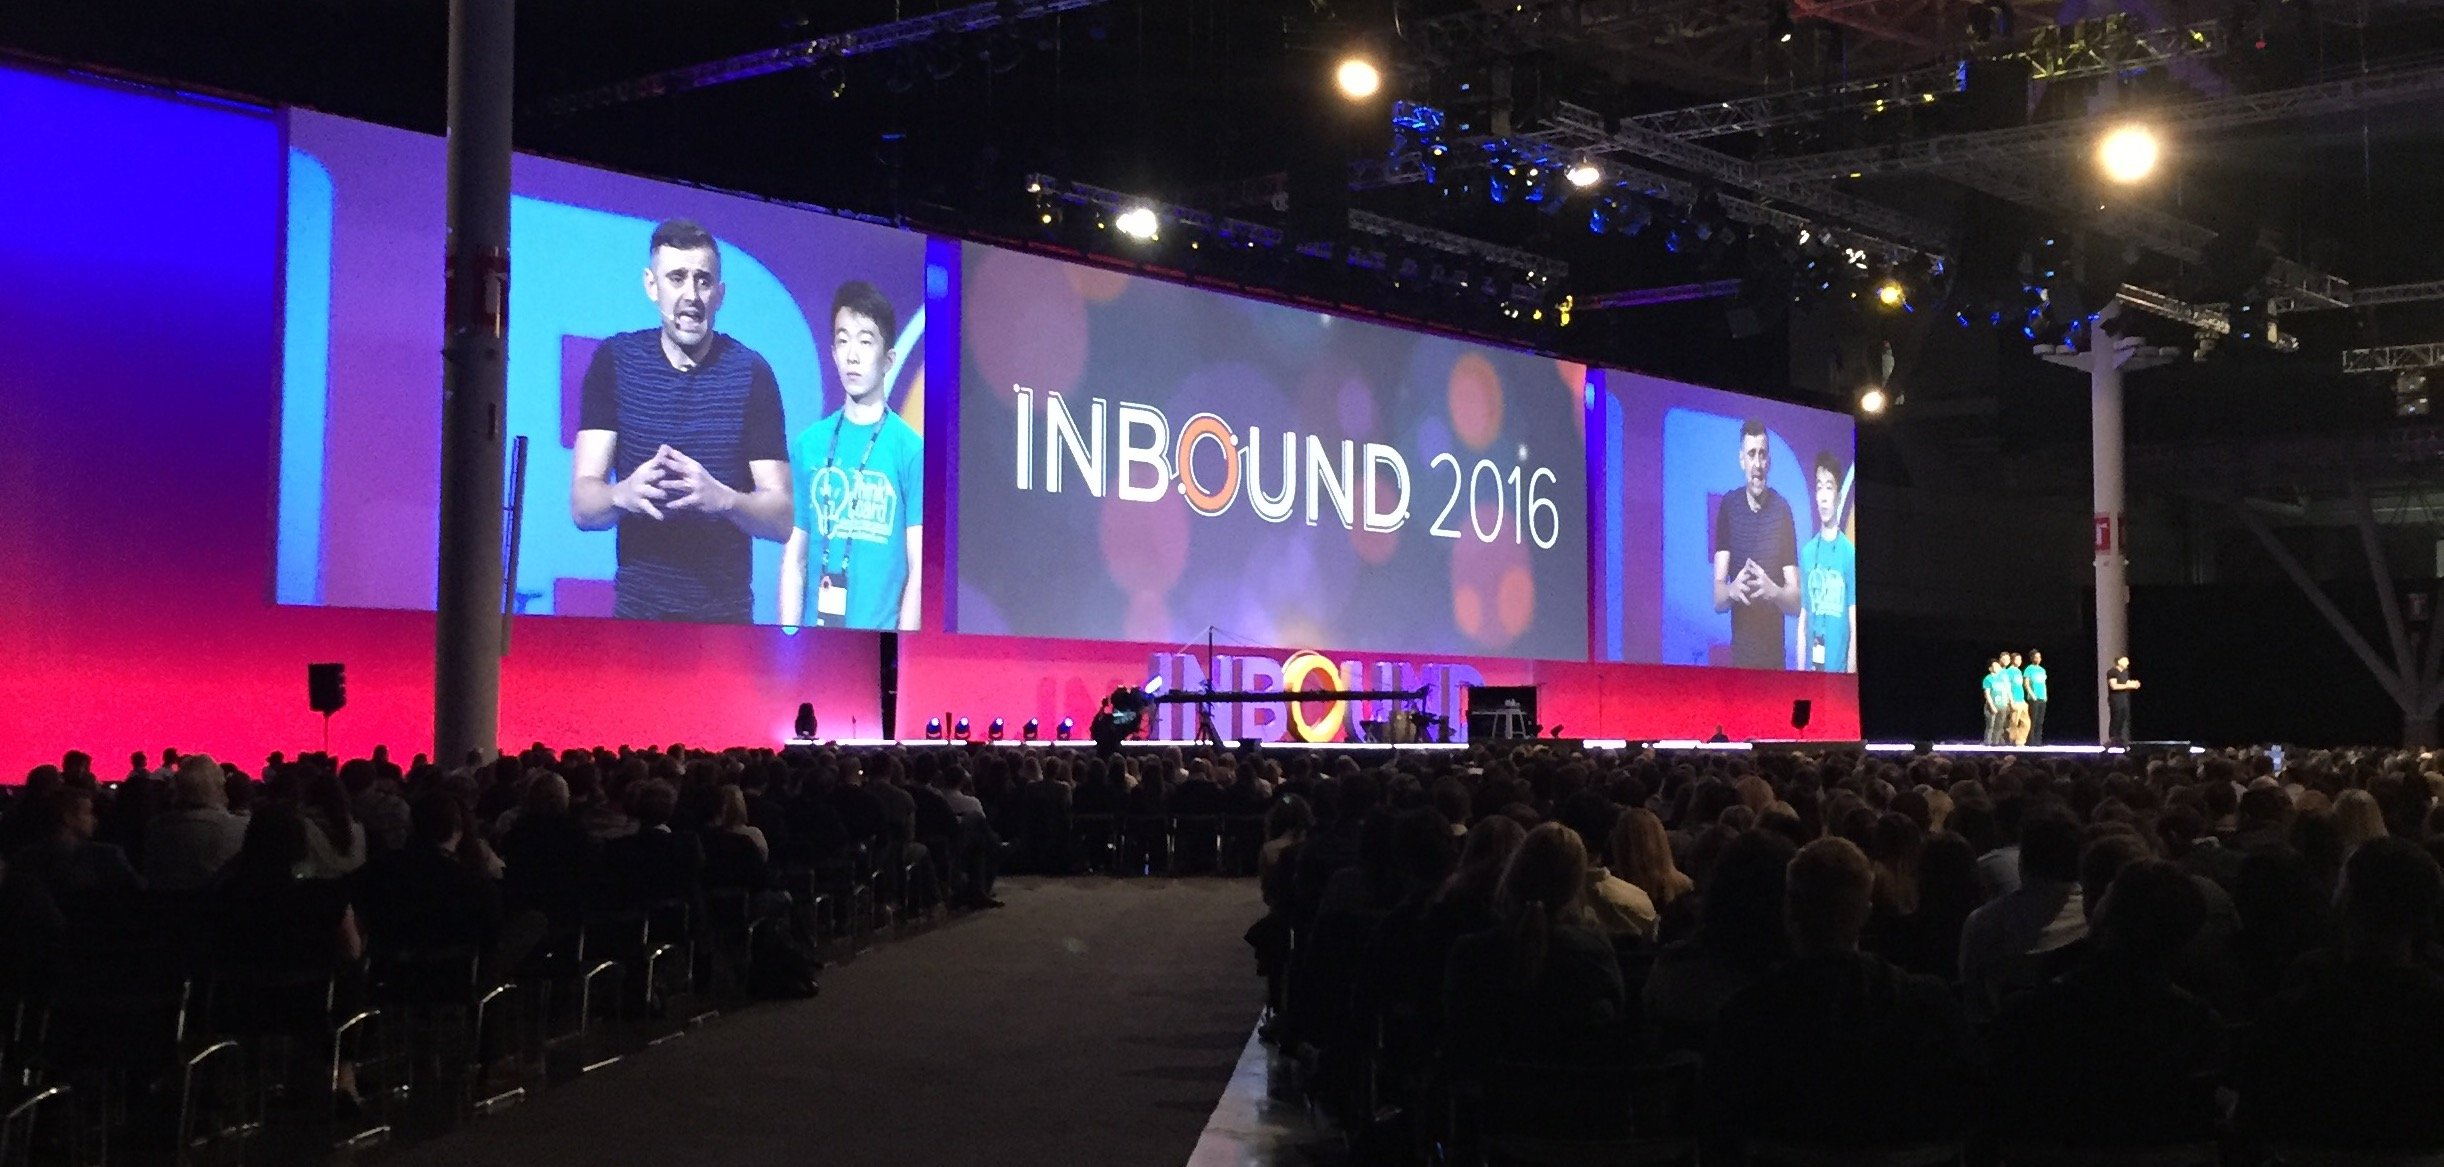 The Future of Inbound Marketing? Reflections from #INBOUND16